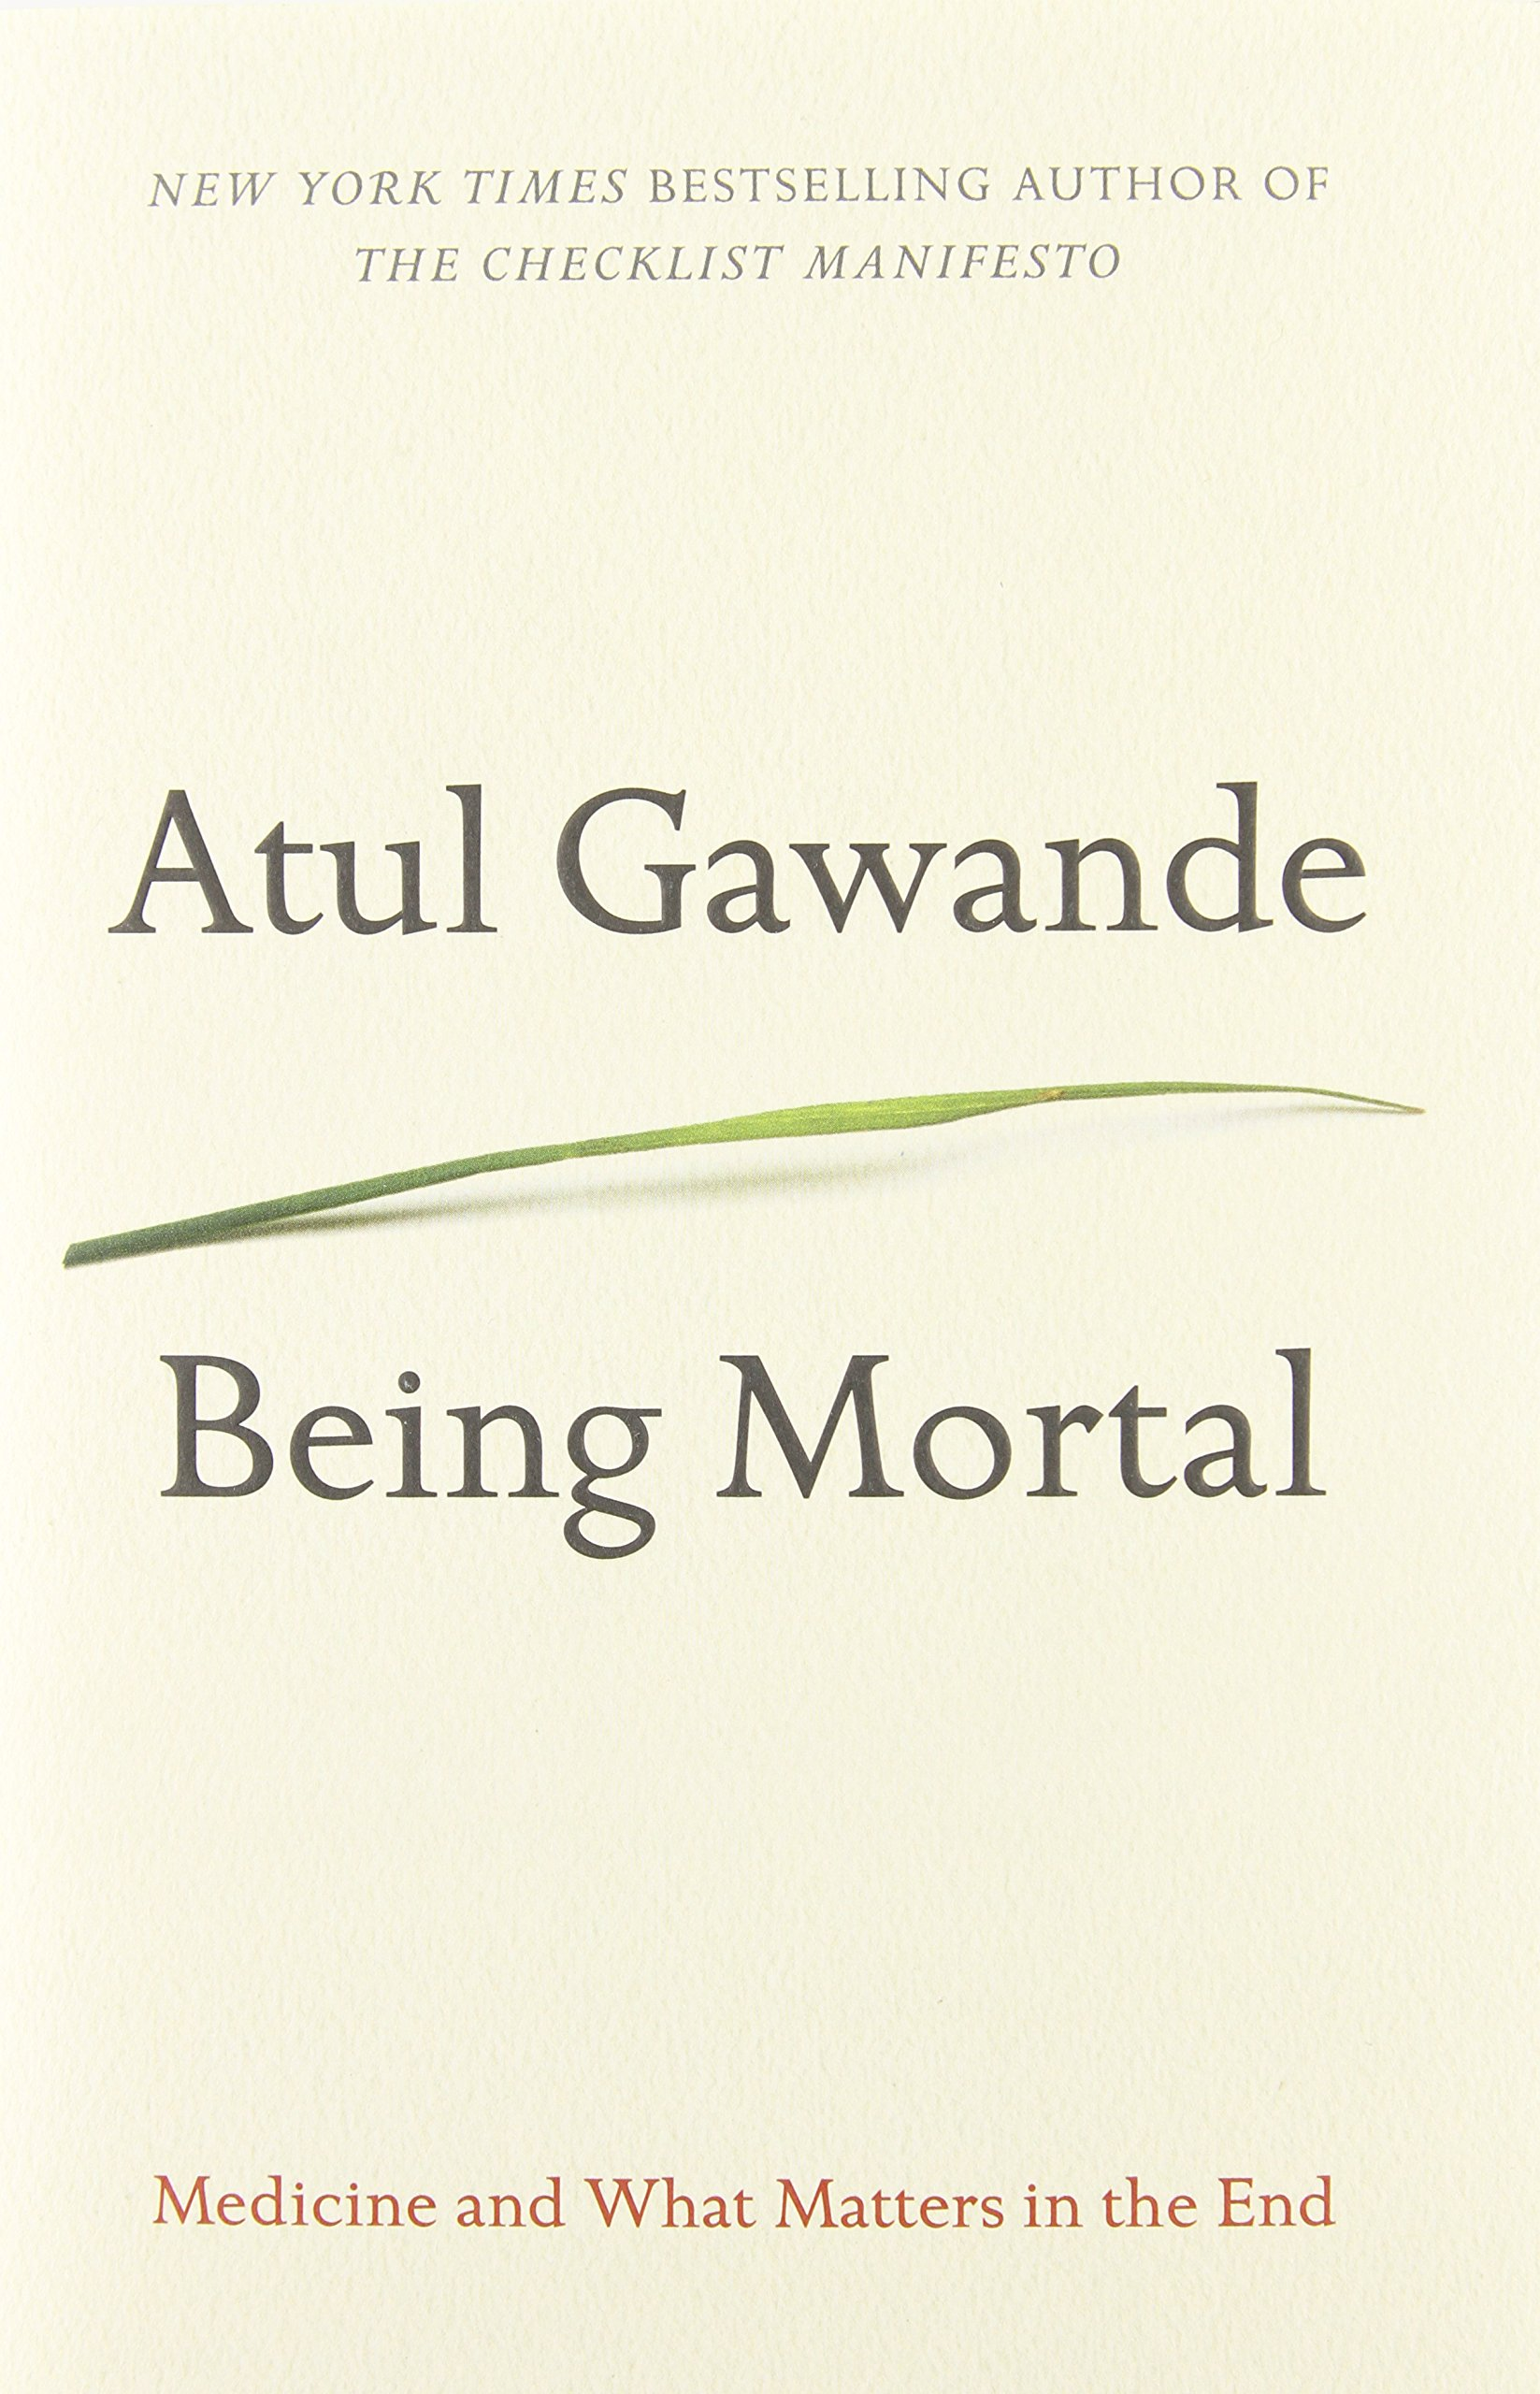 Being Mortal: Atul Gawande: 9780385677004: Books - Amazon.ca